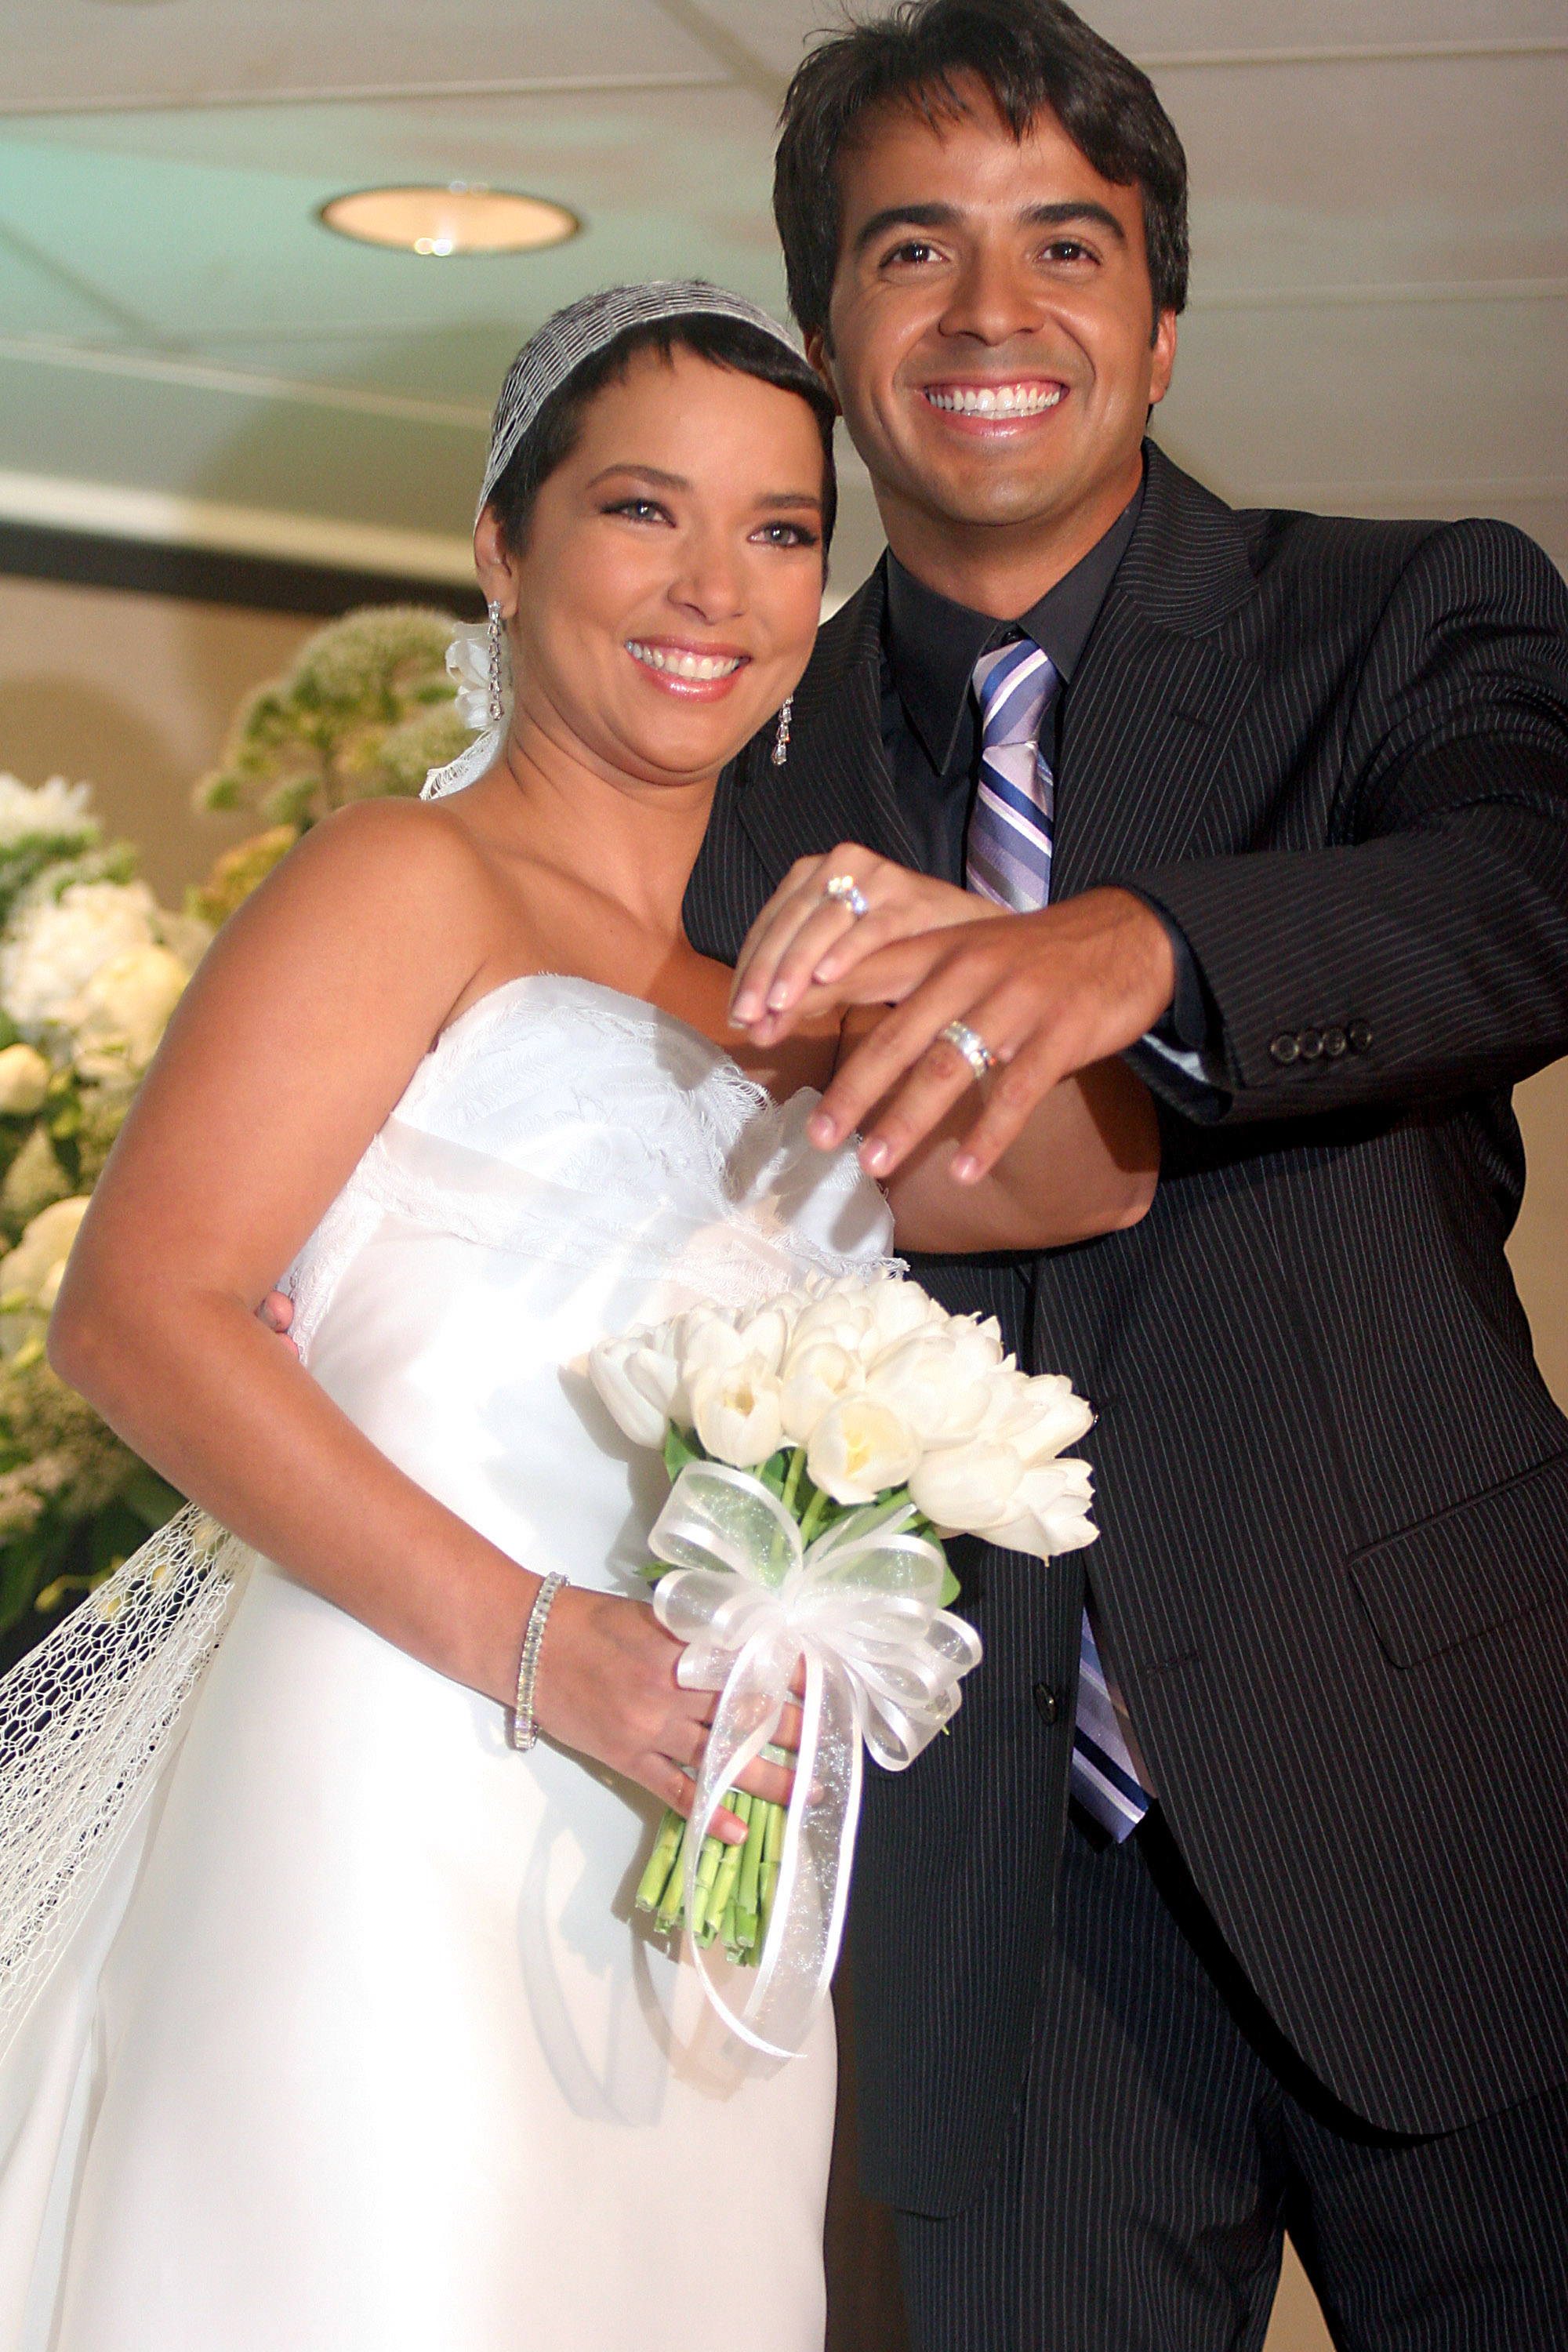 Luis Fonsi and Adamari Lopez Wedding - June 3, 2006